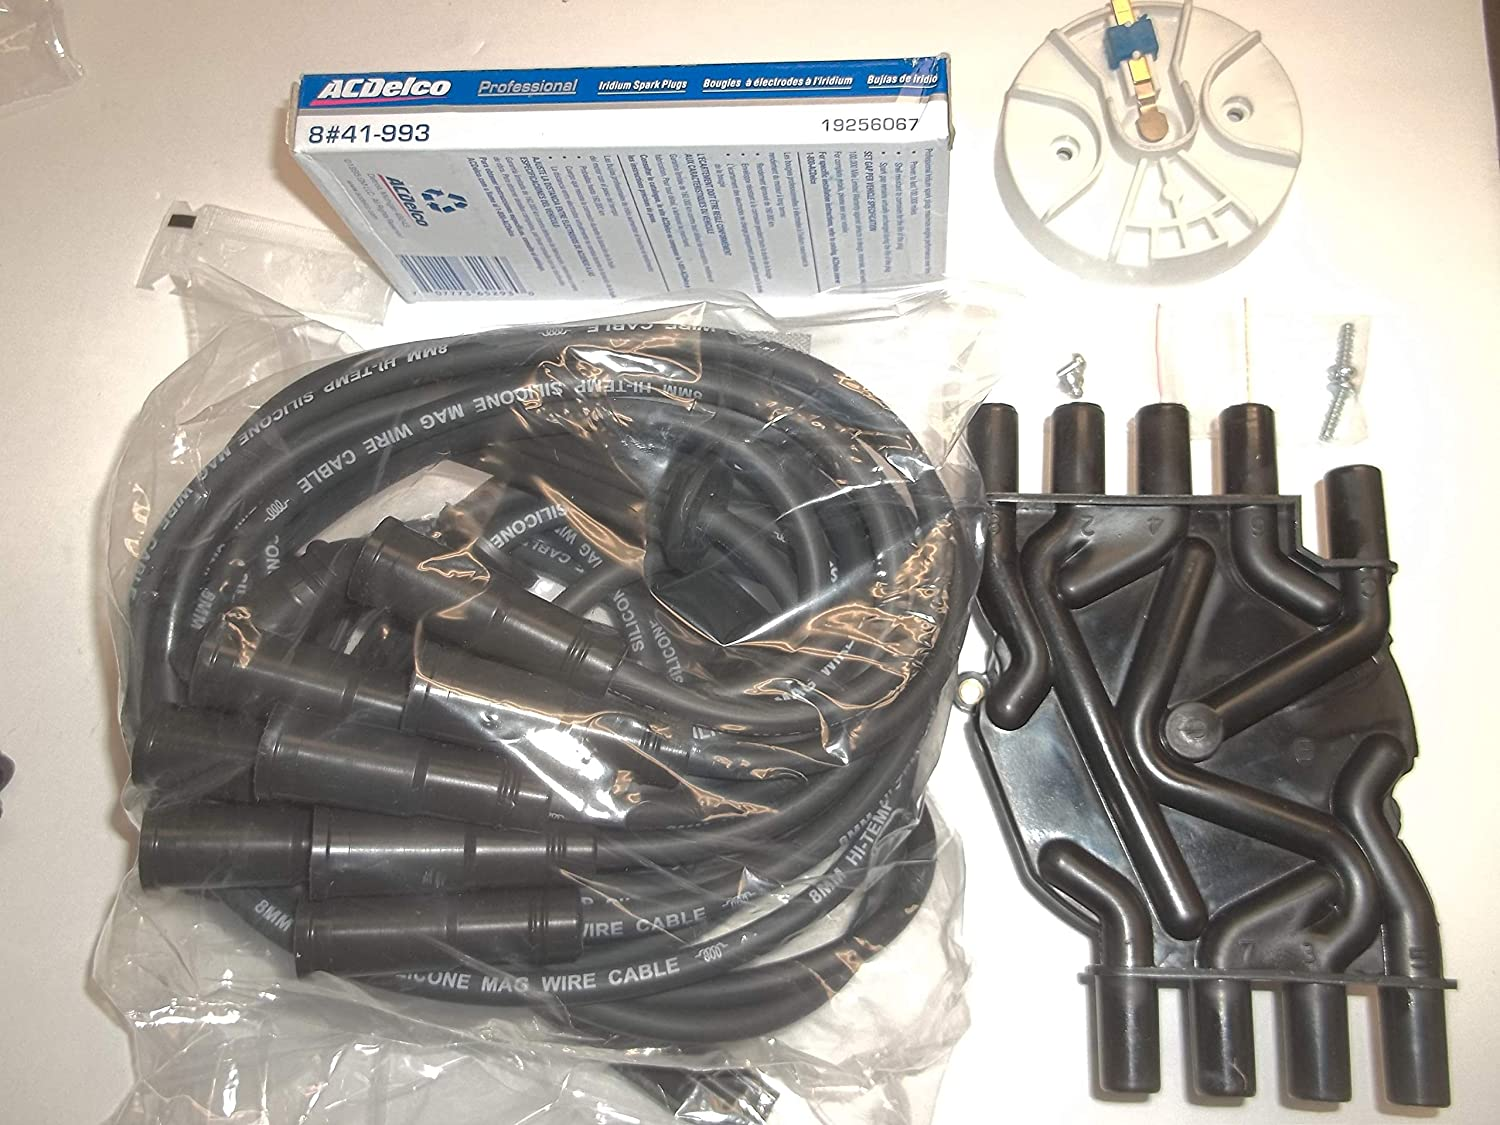 Distributor Outstanding Cap Rotor Spark Plug Ranking TOP6 Wires 41-993 Delco AC Plu and